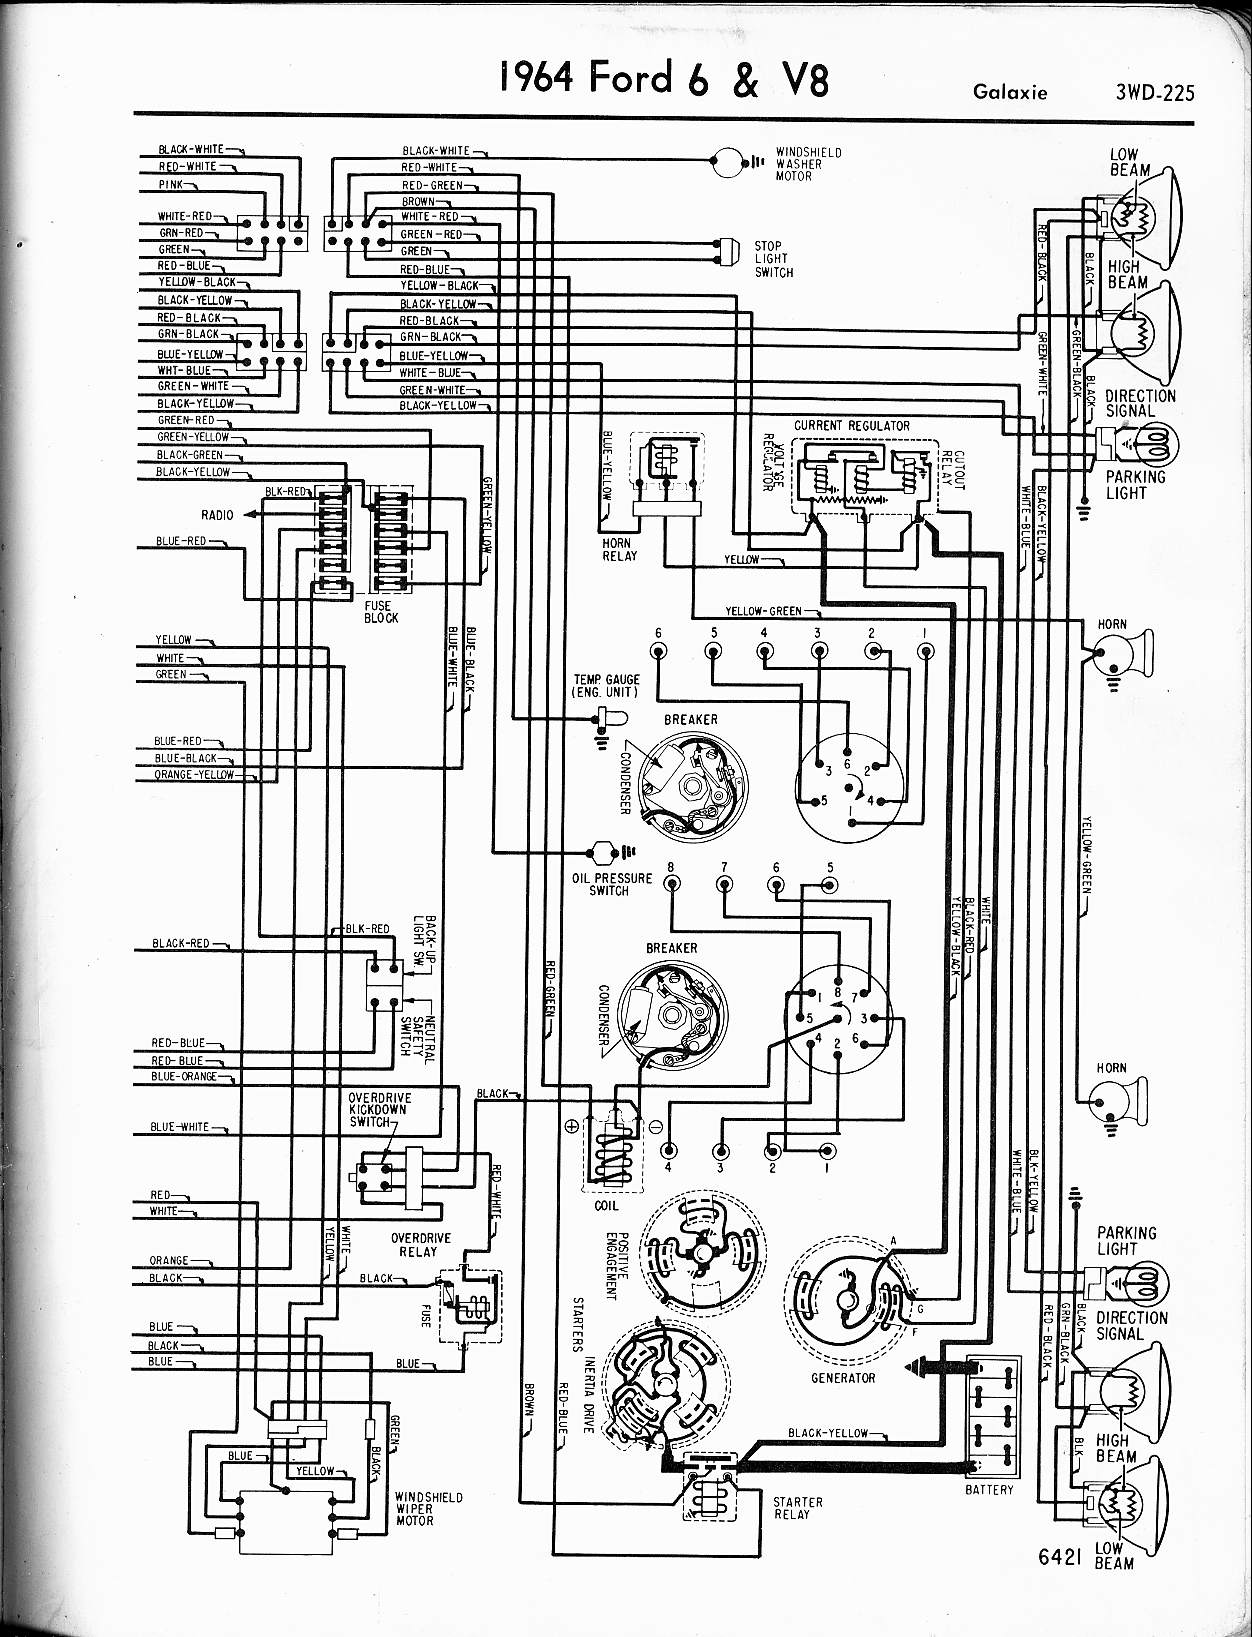 hight resolution of 1964 ford wiring diagram blog wiring diagram 64 ford galaxie wiring diagram 1964 ford wiring diagram